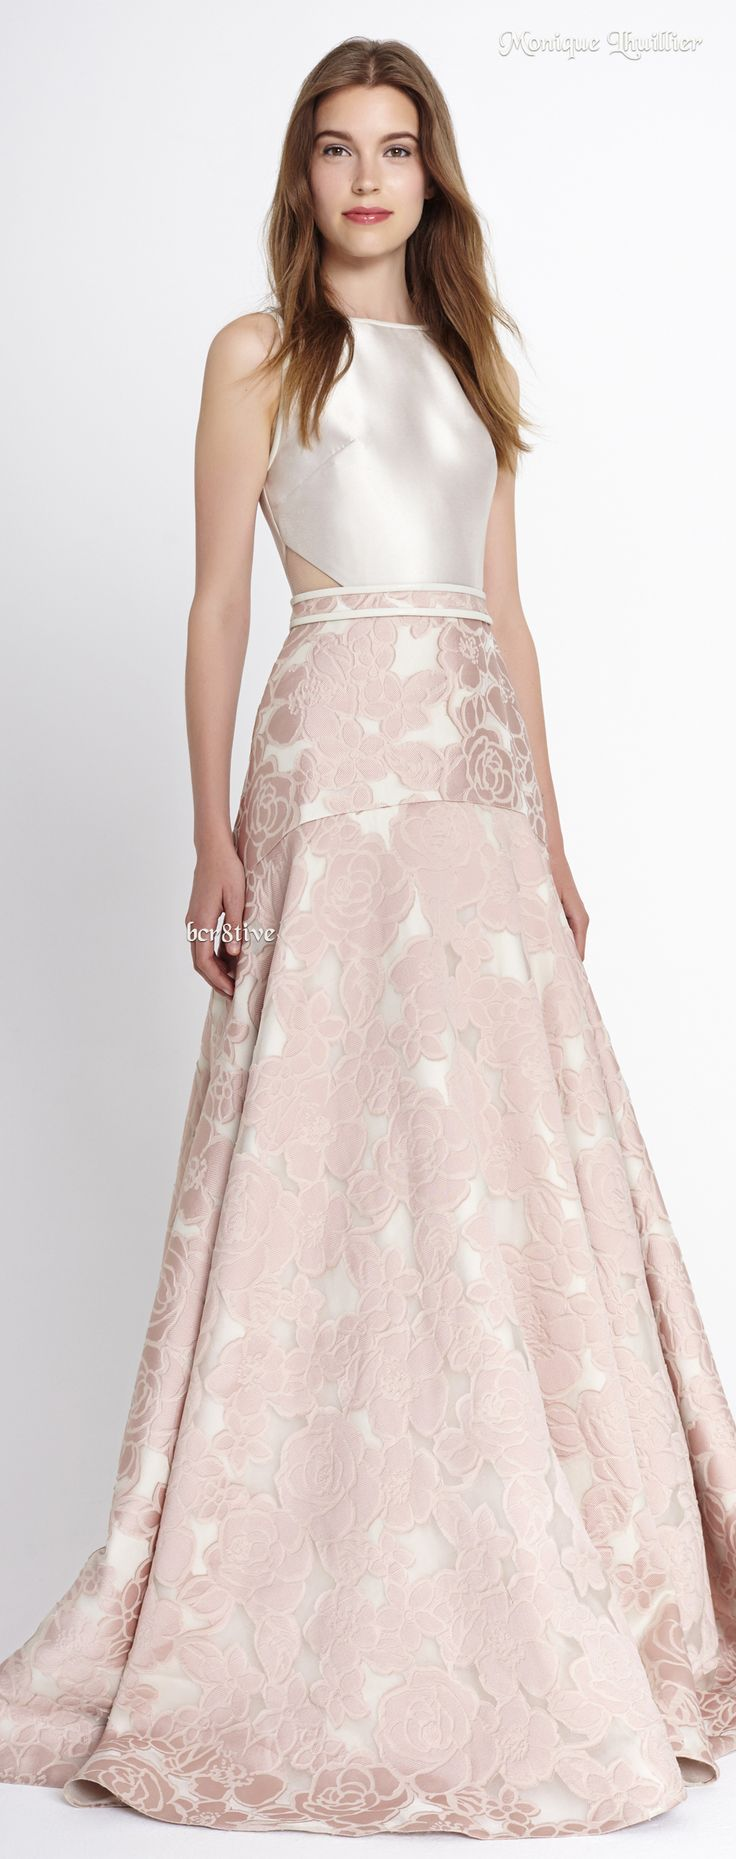 Monique Lhuillier 2015